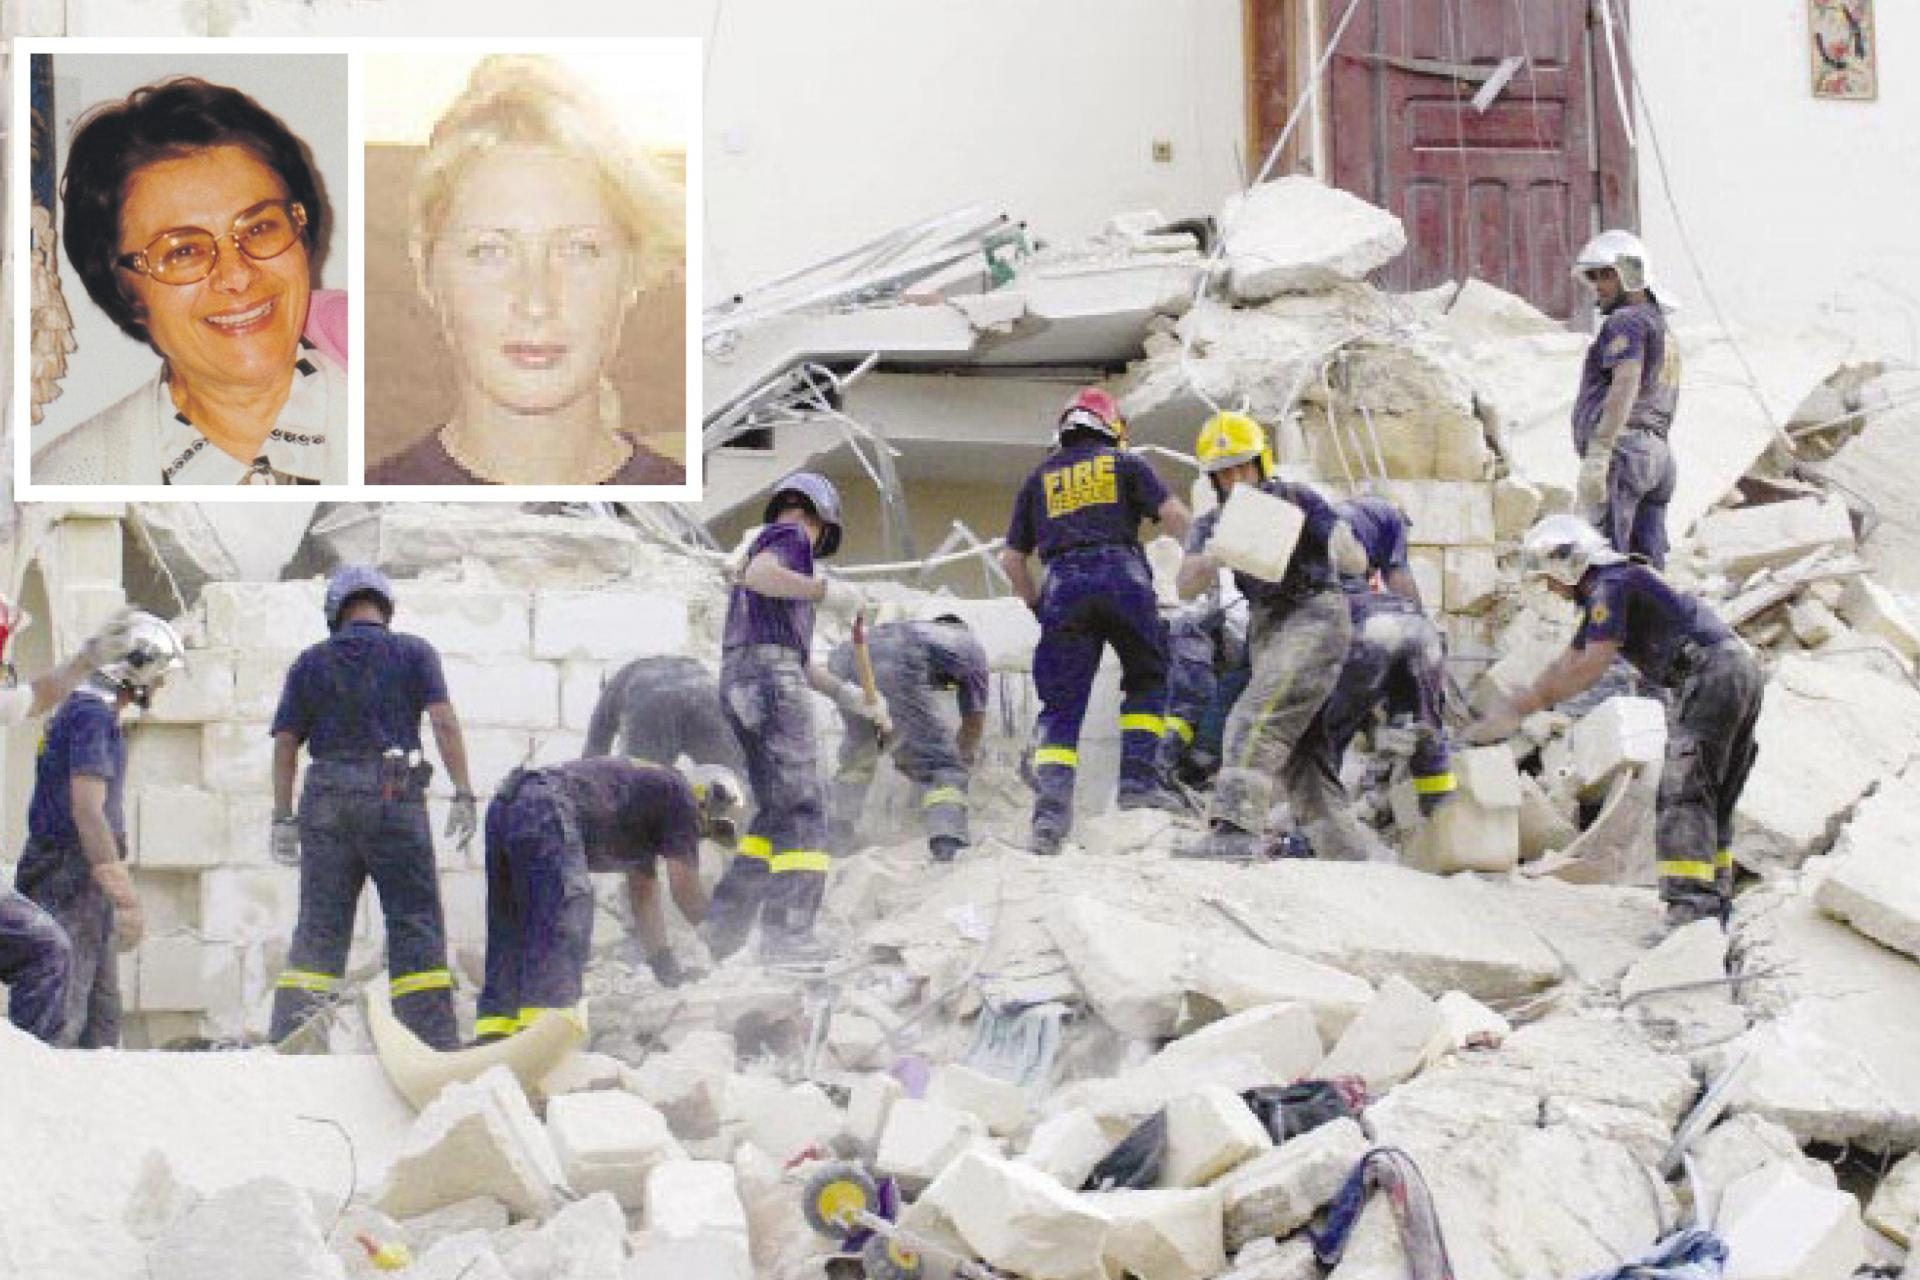 Maria Dolores Zarb (left, inset) was giving a Maltese language lesson to Nadya Vavilova (right, inset) in her apartment when the building collapsed, killing them both.